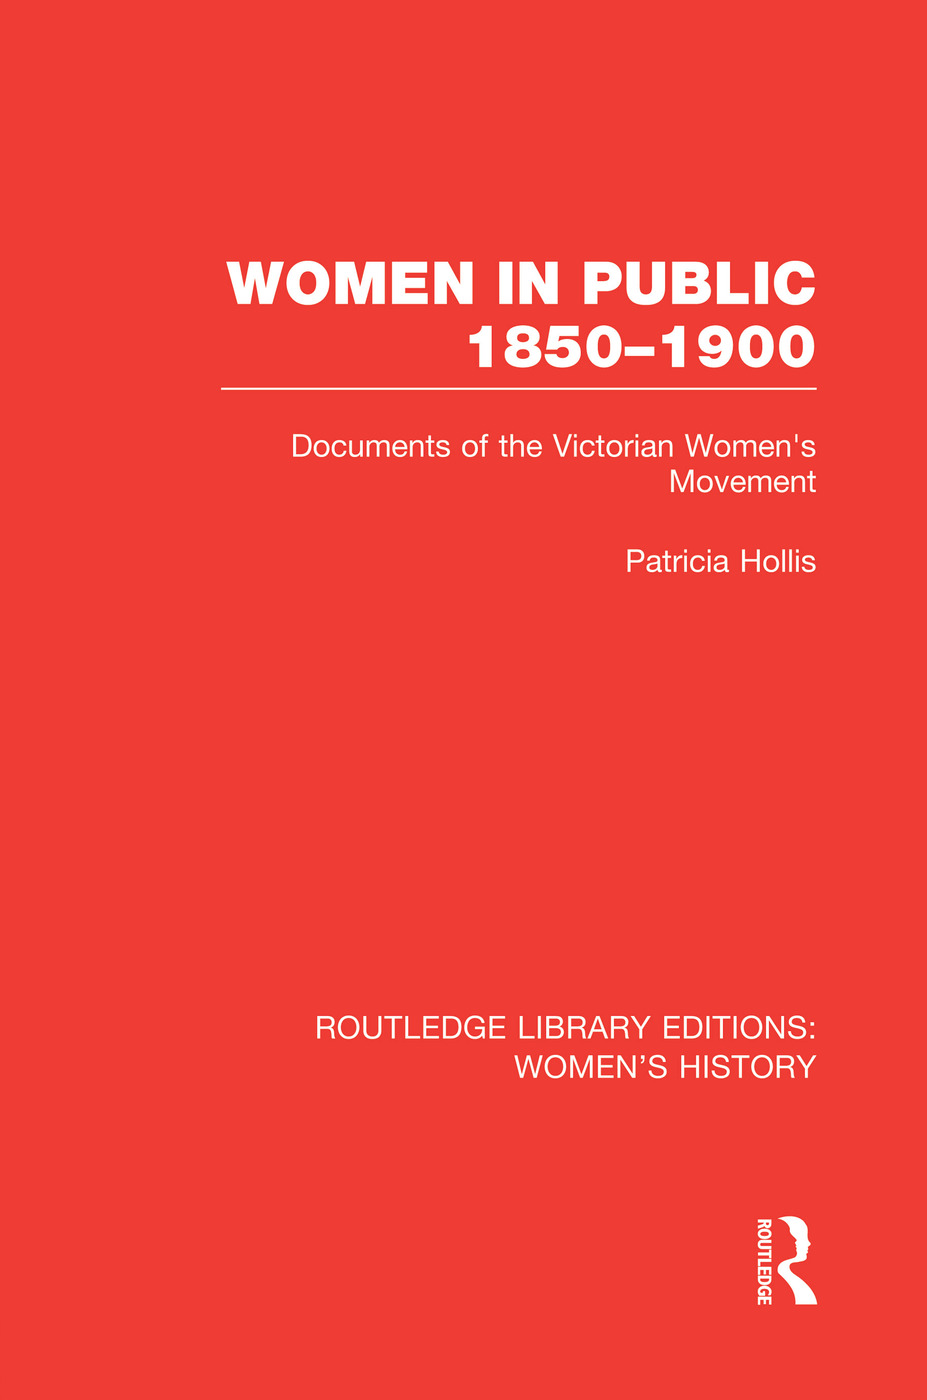 Women in Public, 1850-1900: Documents of the Victorian Women's Movement book cover